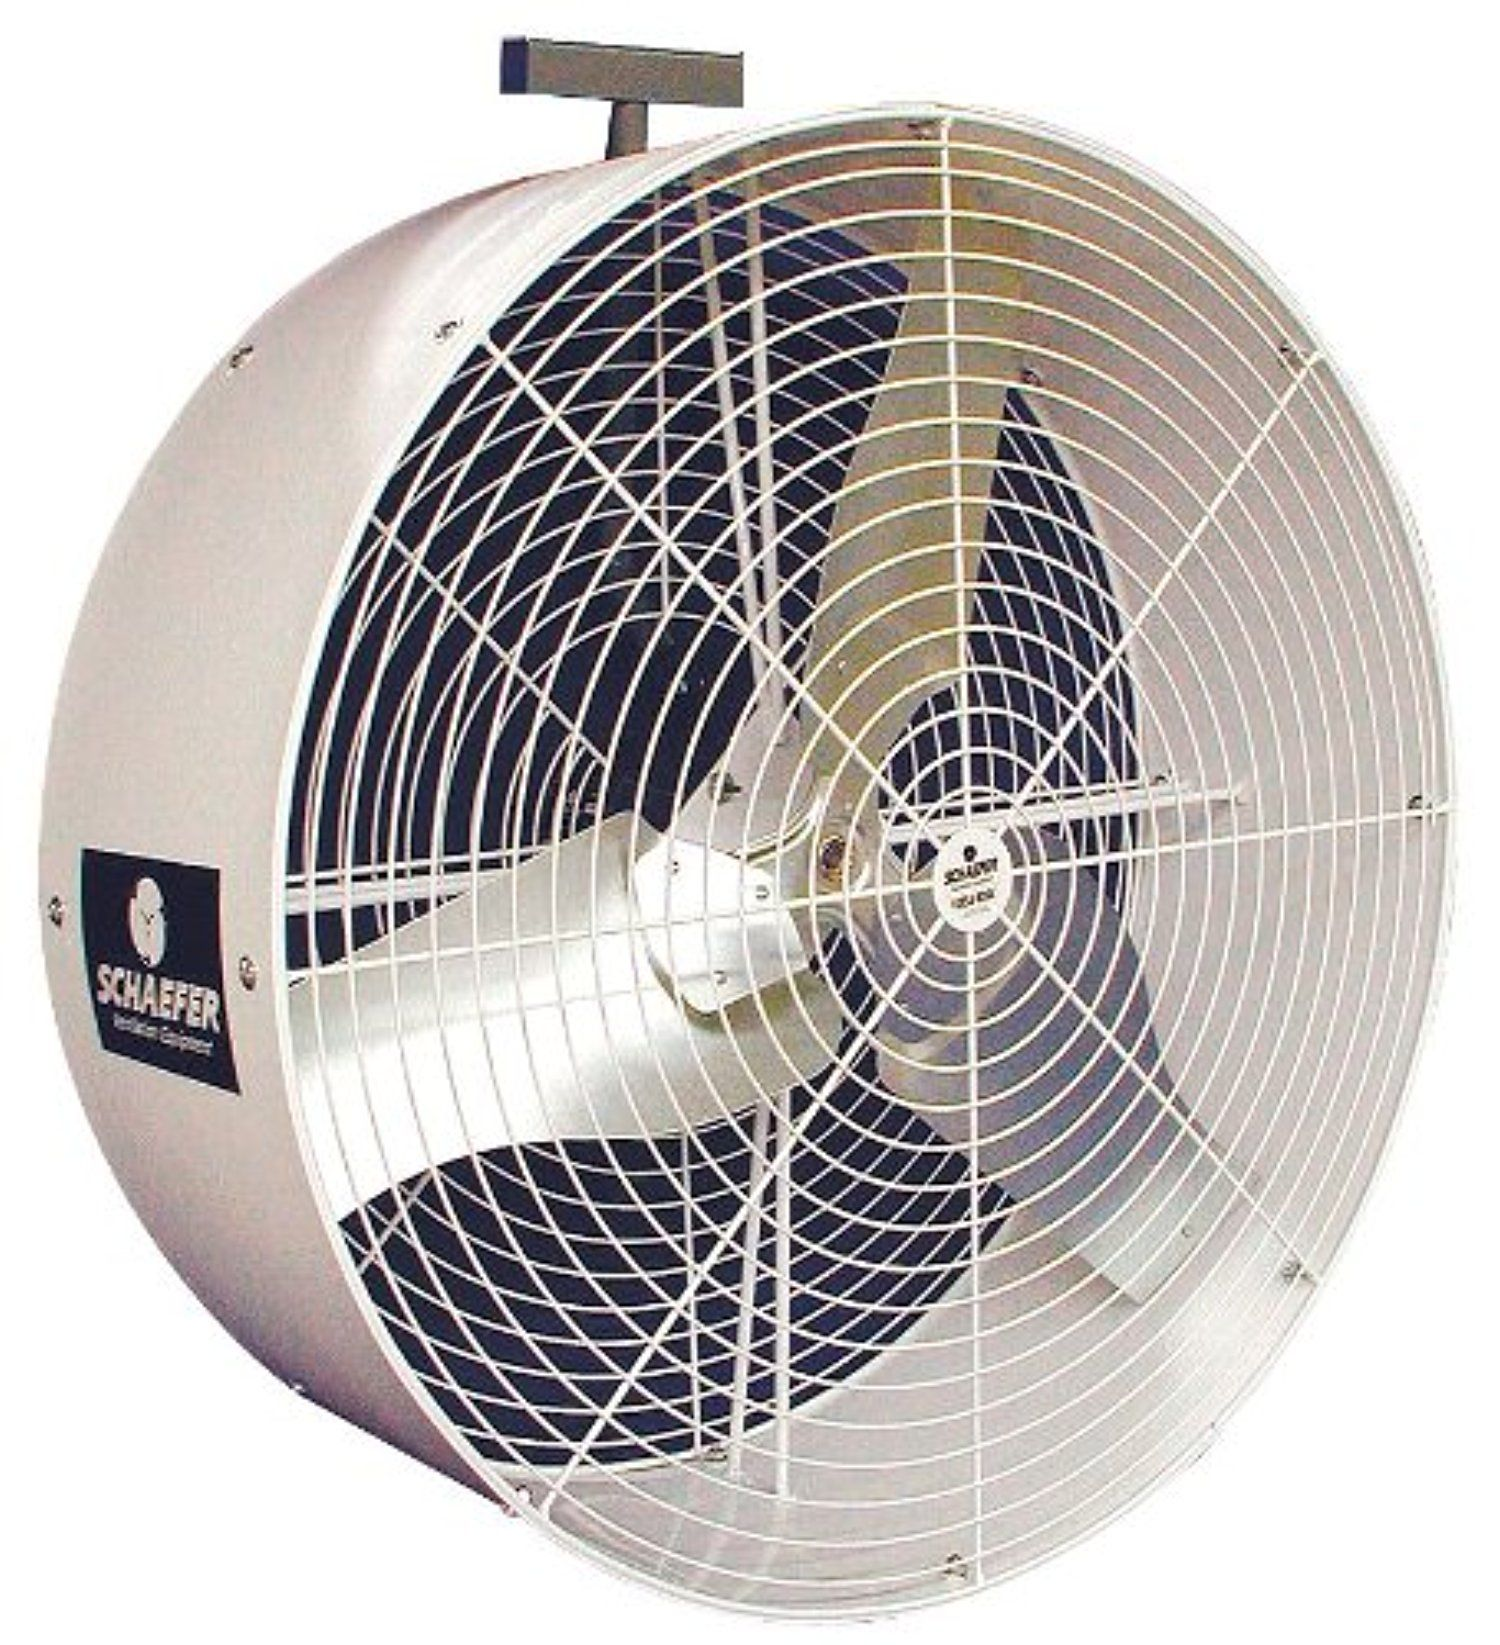 Schaefer Systems Gvk36 3 36 Industrial Wall Mounted Non Oscillating Air Circulator Awesome Products Selected By Anna Industrial Wall Industrial Fan Fan